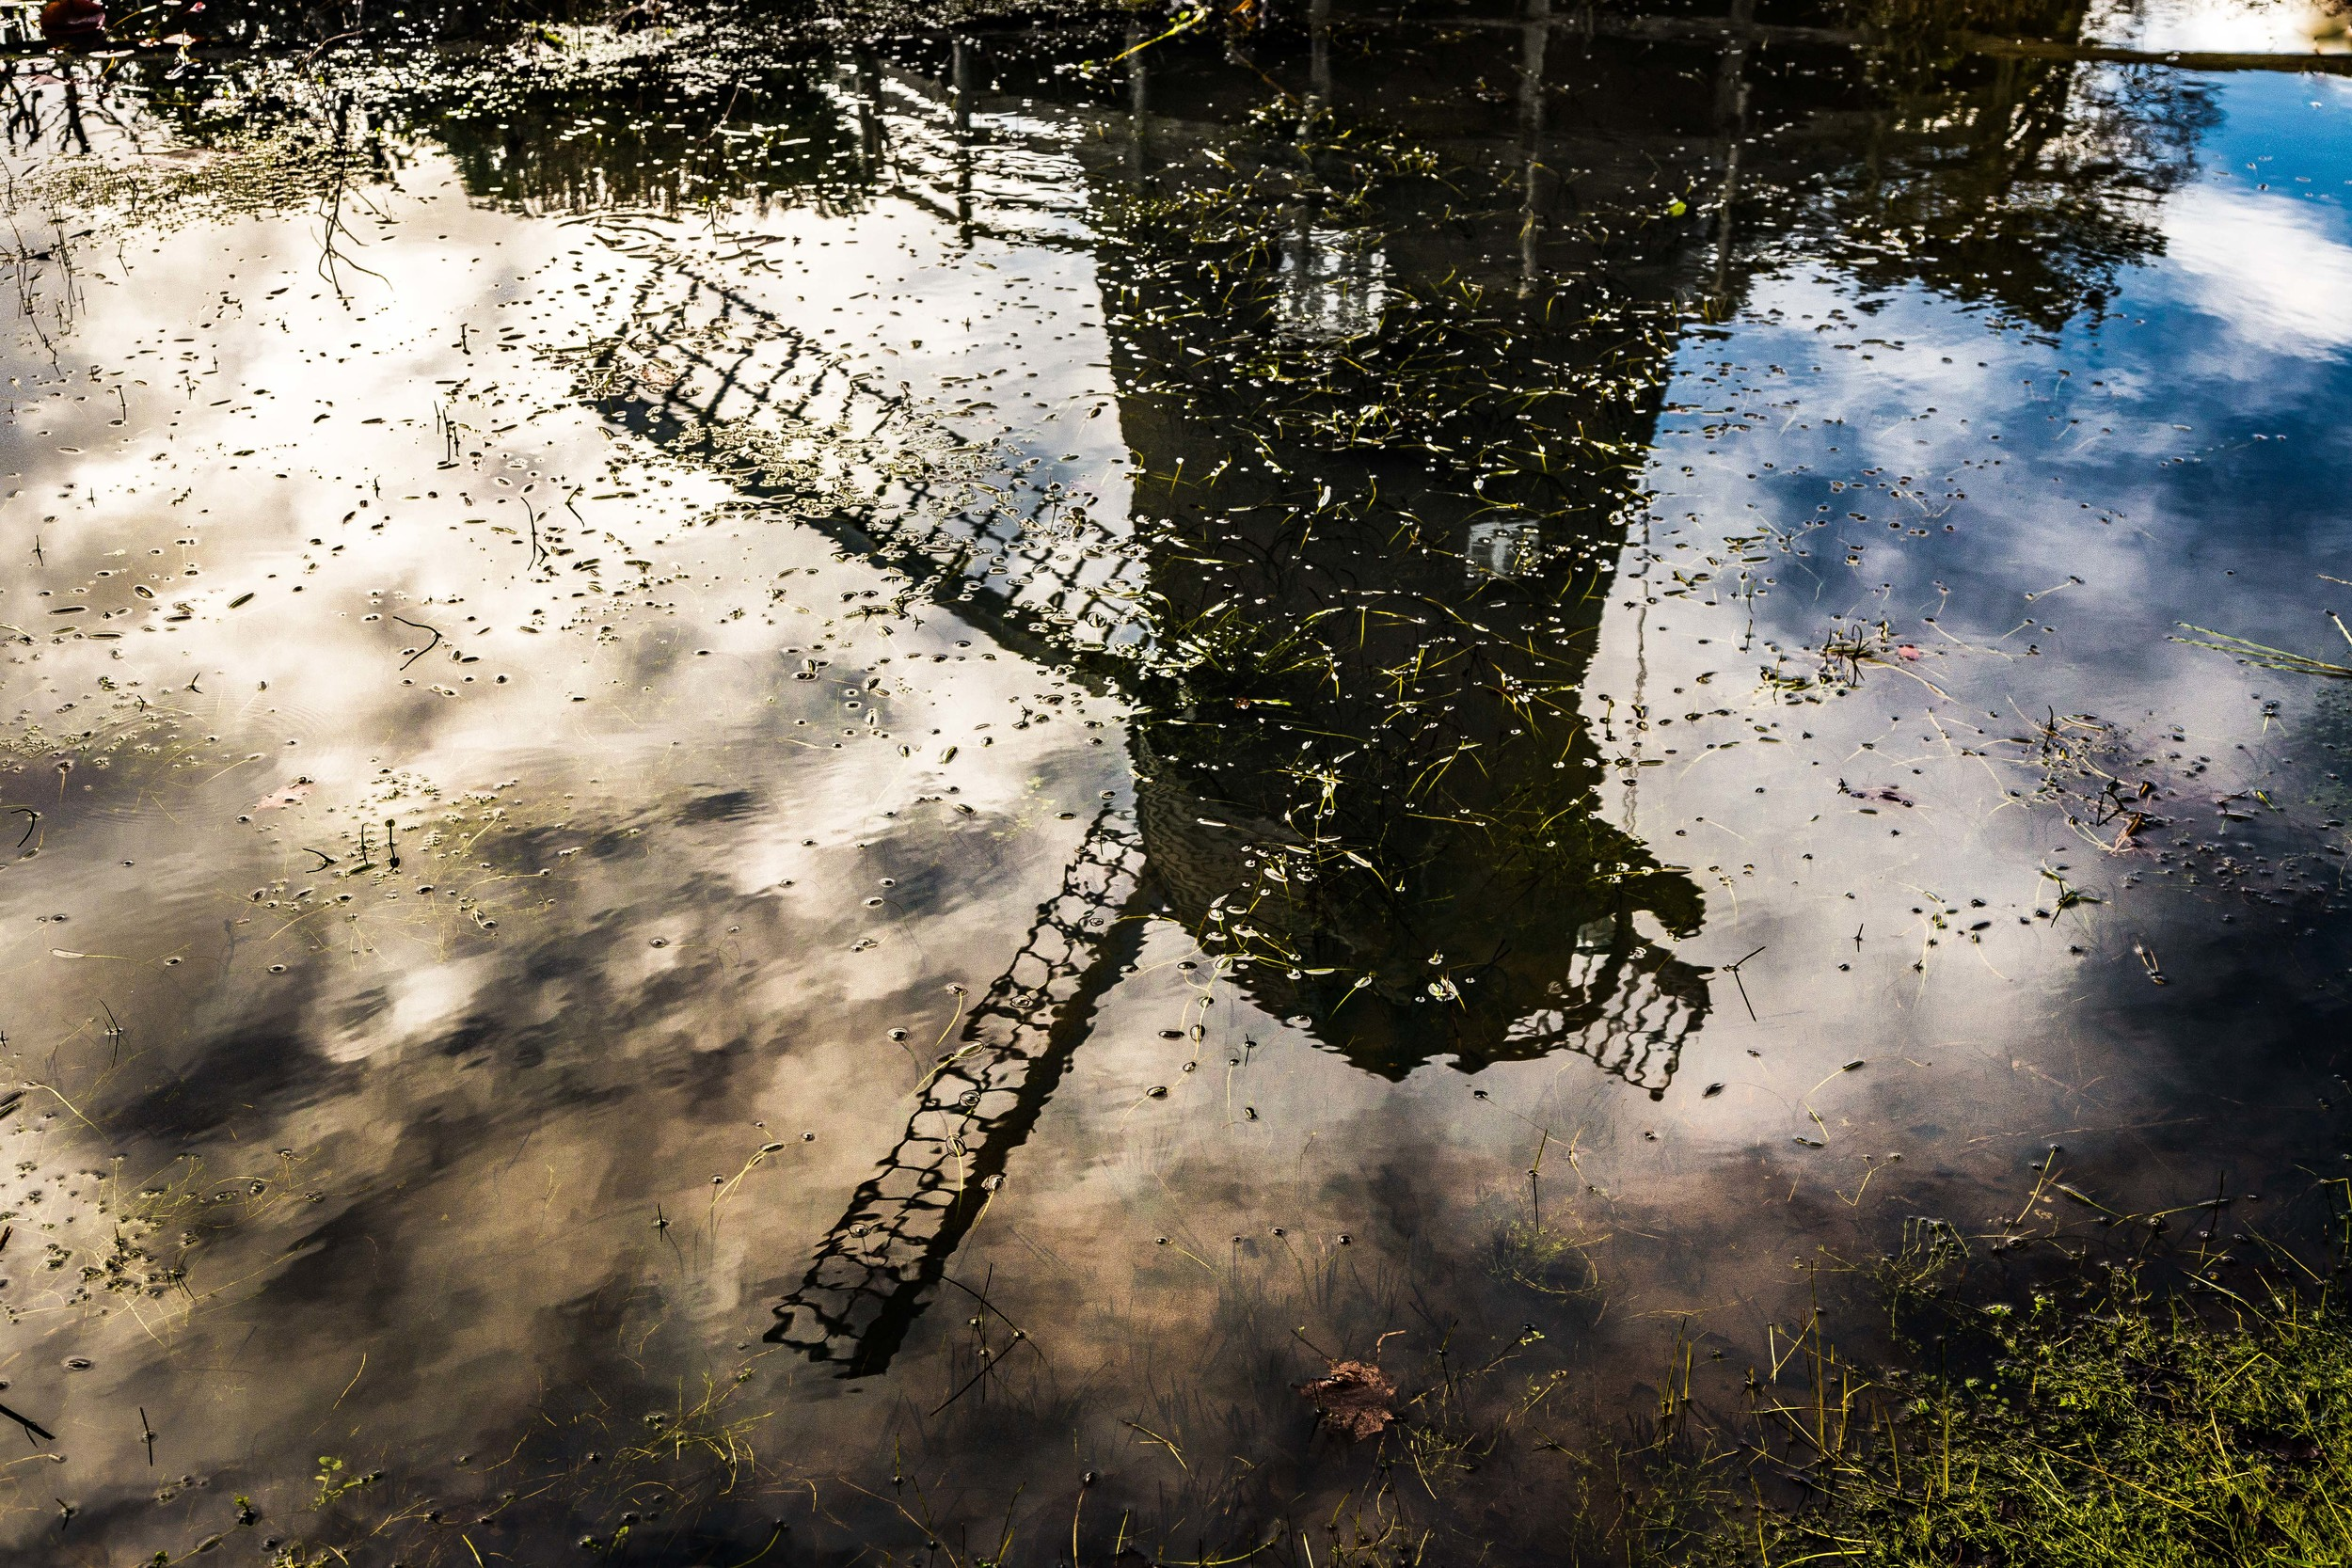 Windmill reflection, Burseldon, Hampshire